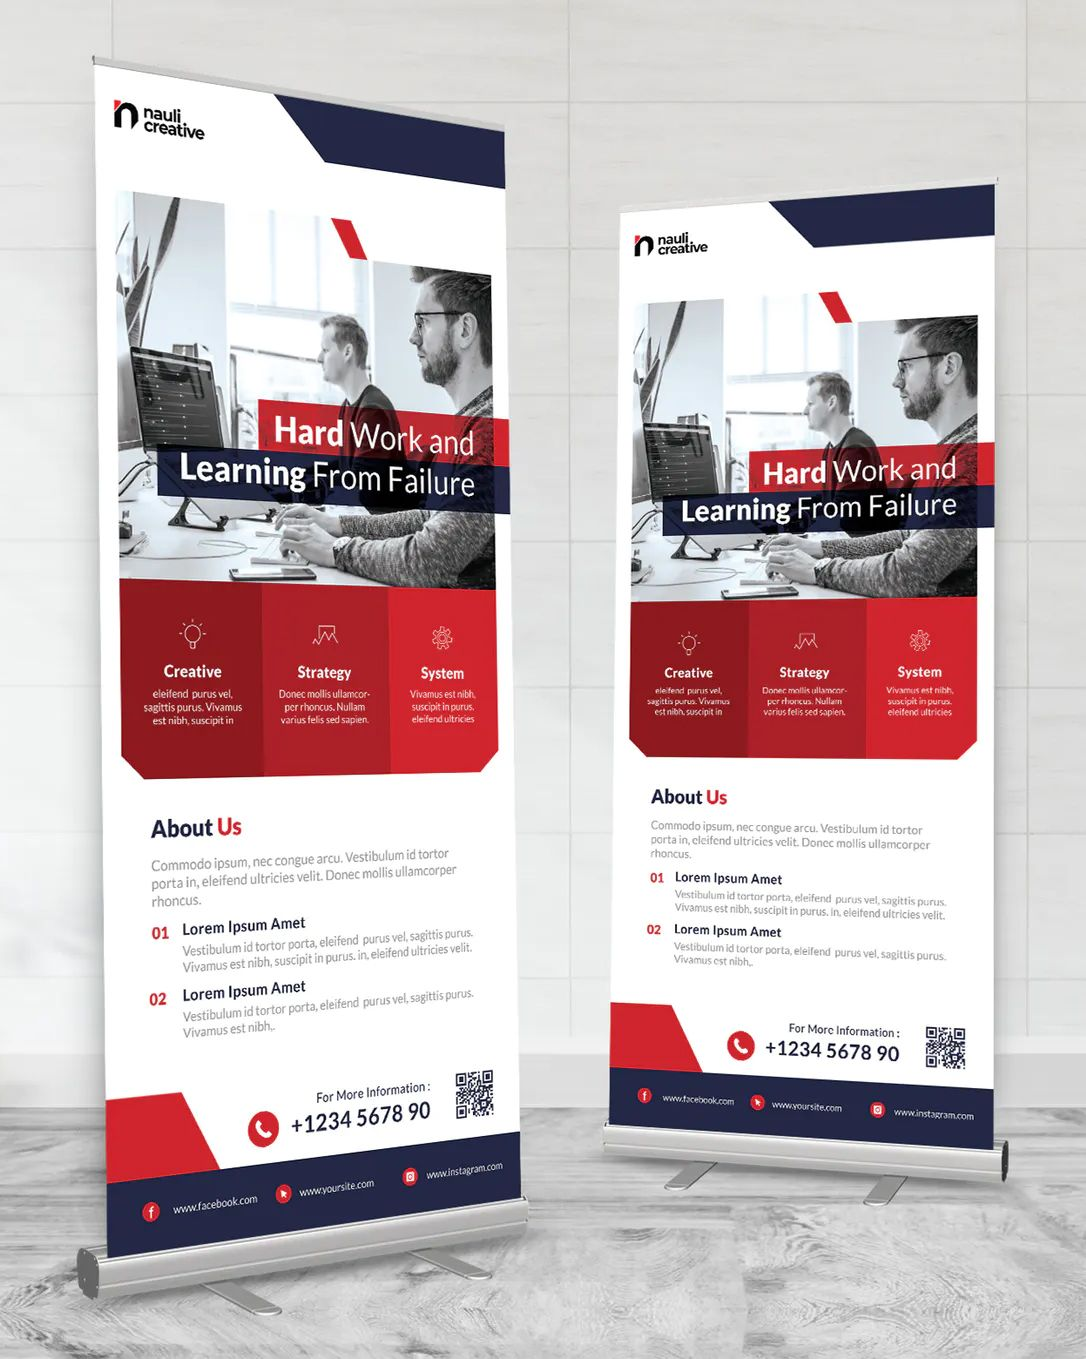 Creative Roll Up Banner AI, PSD in 2020 Banner, Psd